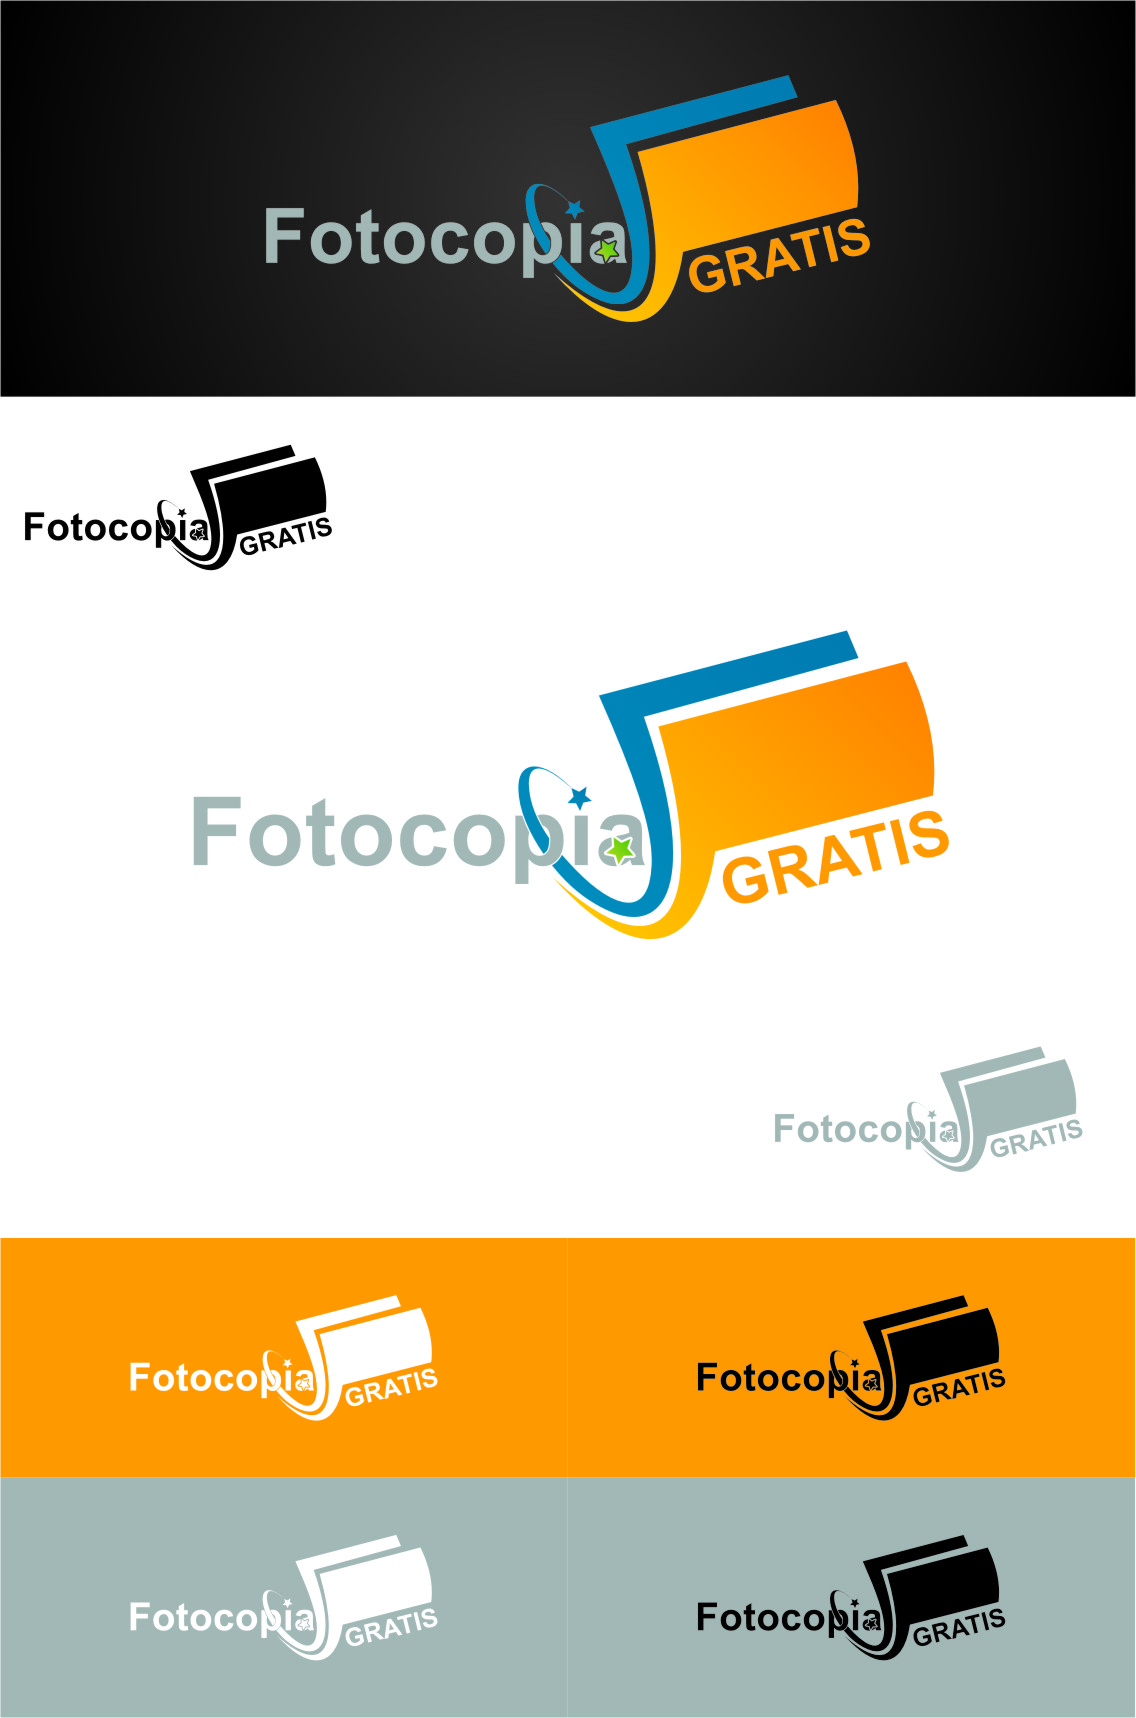 Logo Design by Ngepet_art - Entry No. 238 in the Logo Design Contest Inspiring Logo Design for Fotocopiagratis.